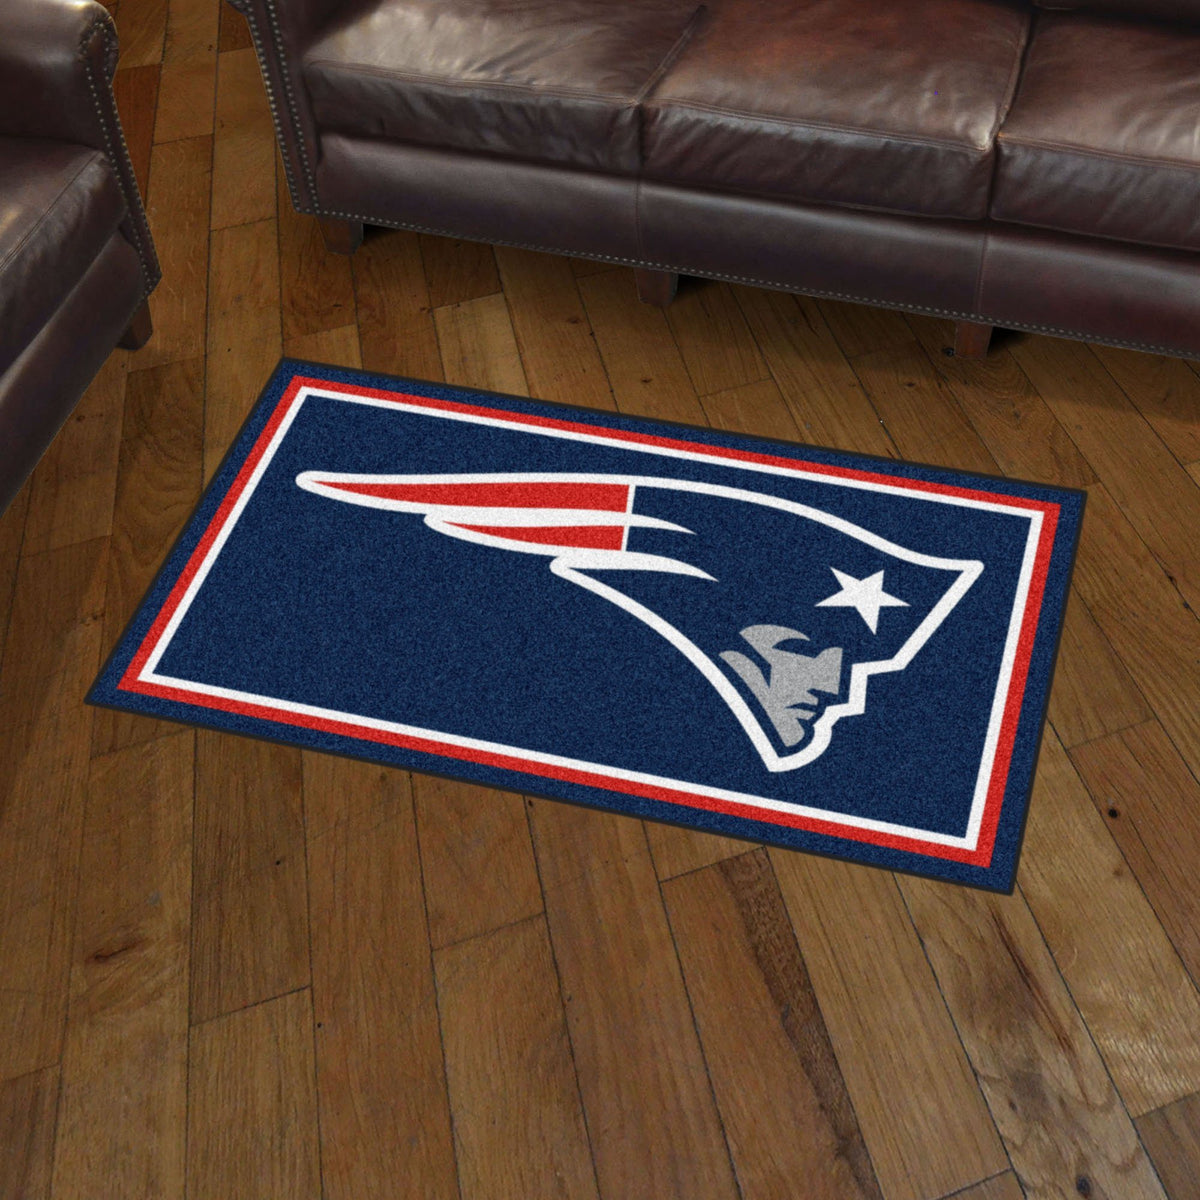 NFL - 3' x 5' Rug NFL Mats, Plush Rugs, 3x5 Rug, NFL, Home Fan Mats New England Patriots